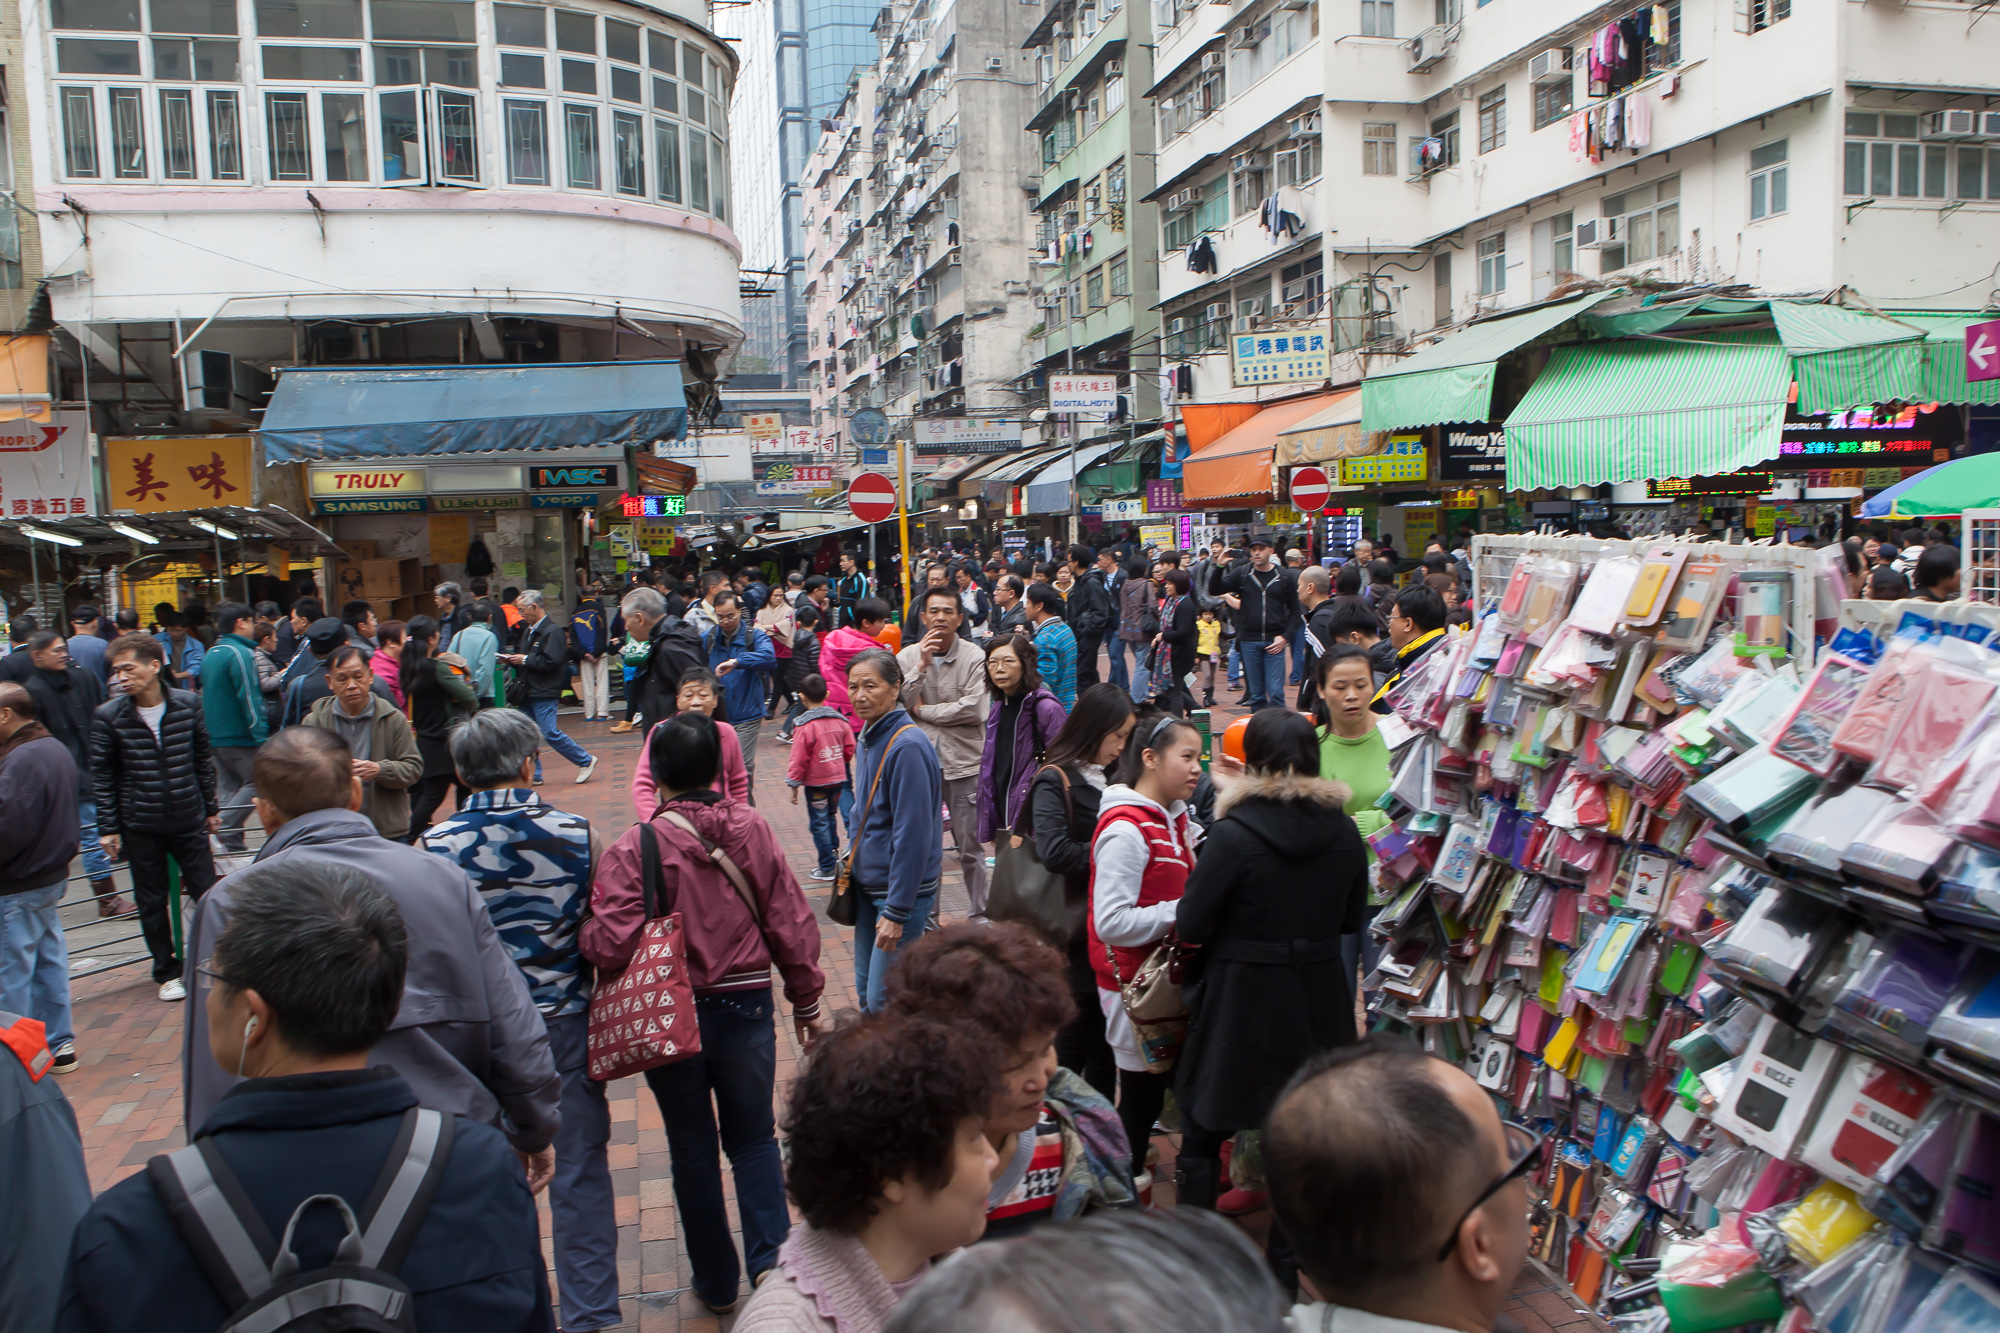 Sham Shui Po – Secret shopping tip for Hong Kong